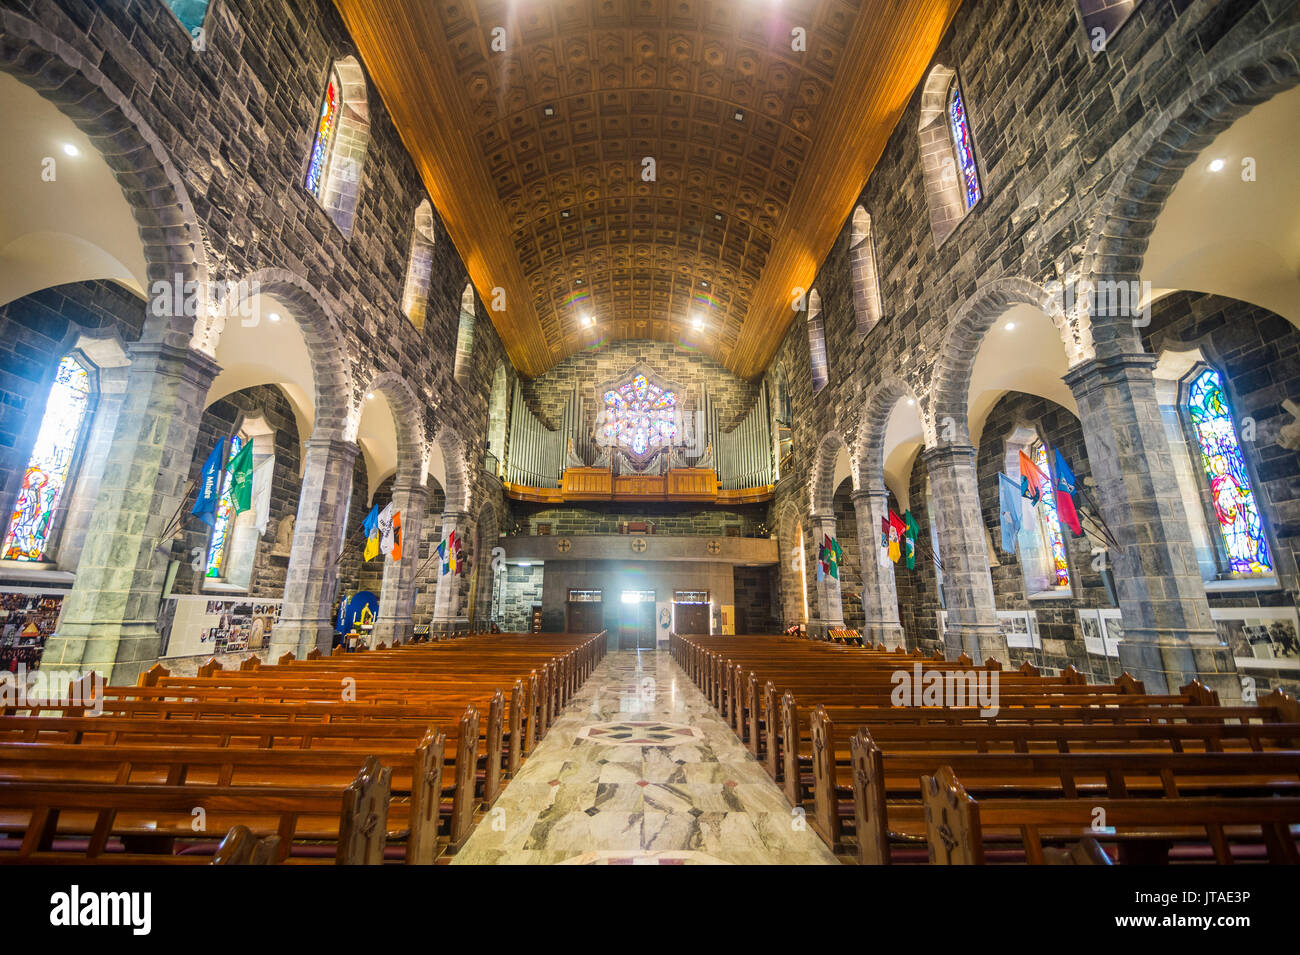 Interior of the Galway Cathedral, Galway, Connacht, Republic of Ireland, Europe - Stock Image